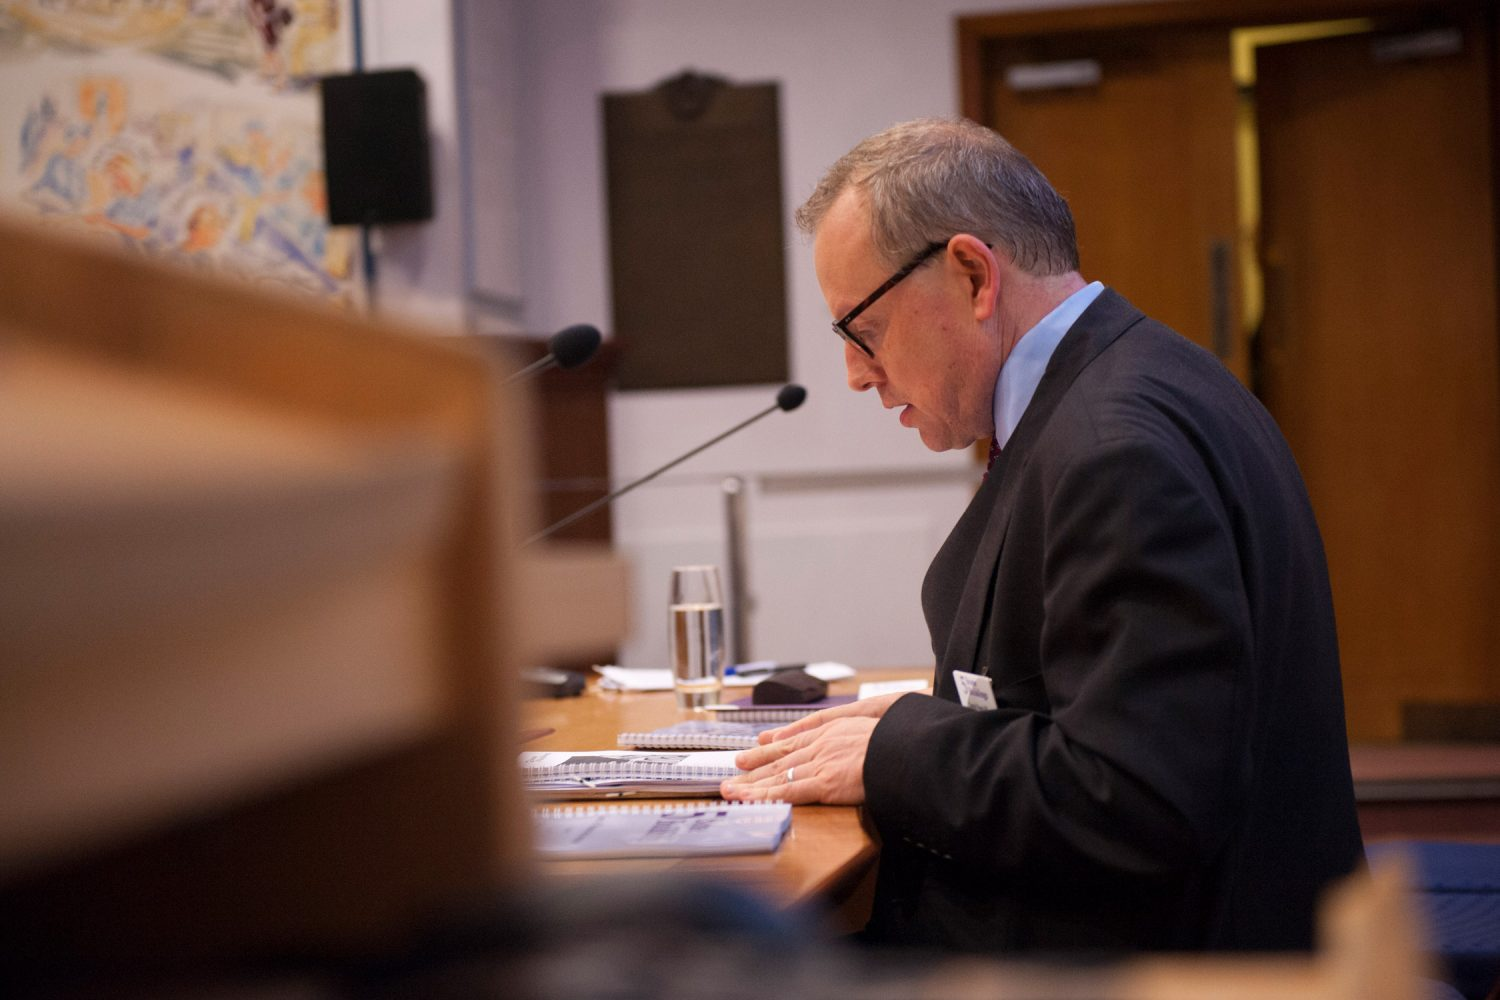 David Rees QC appointed as Deputy High Court Judge - 5 Stone Buildings